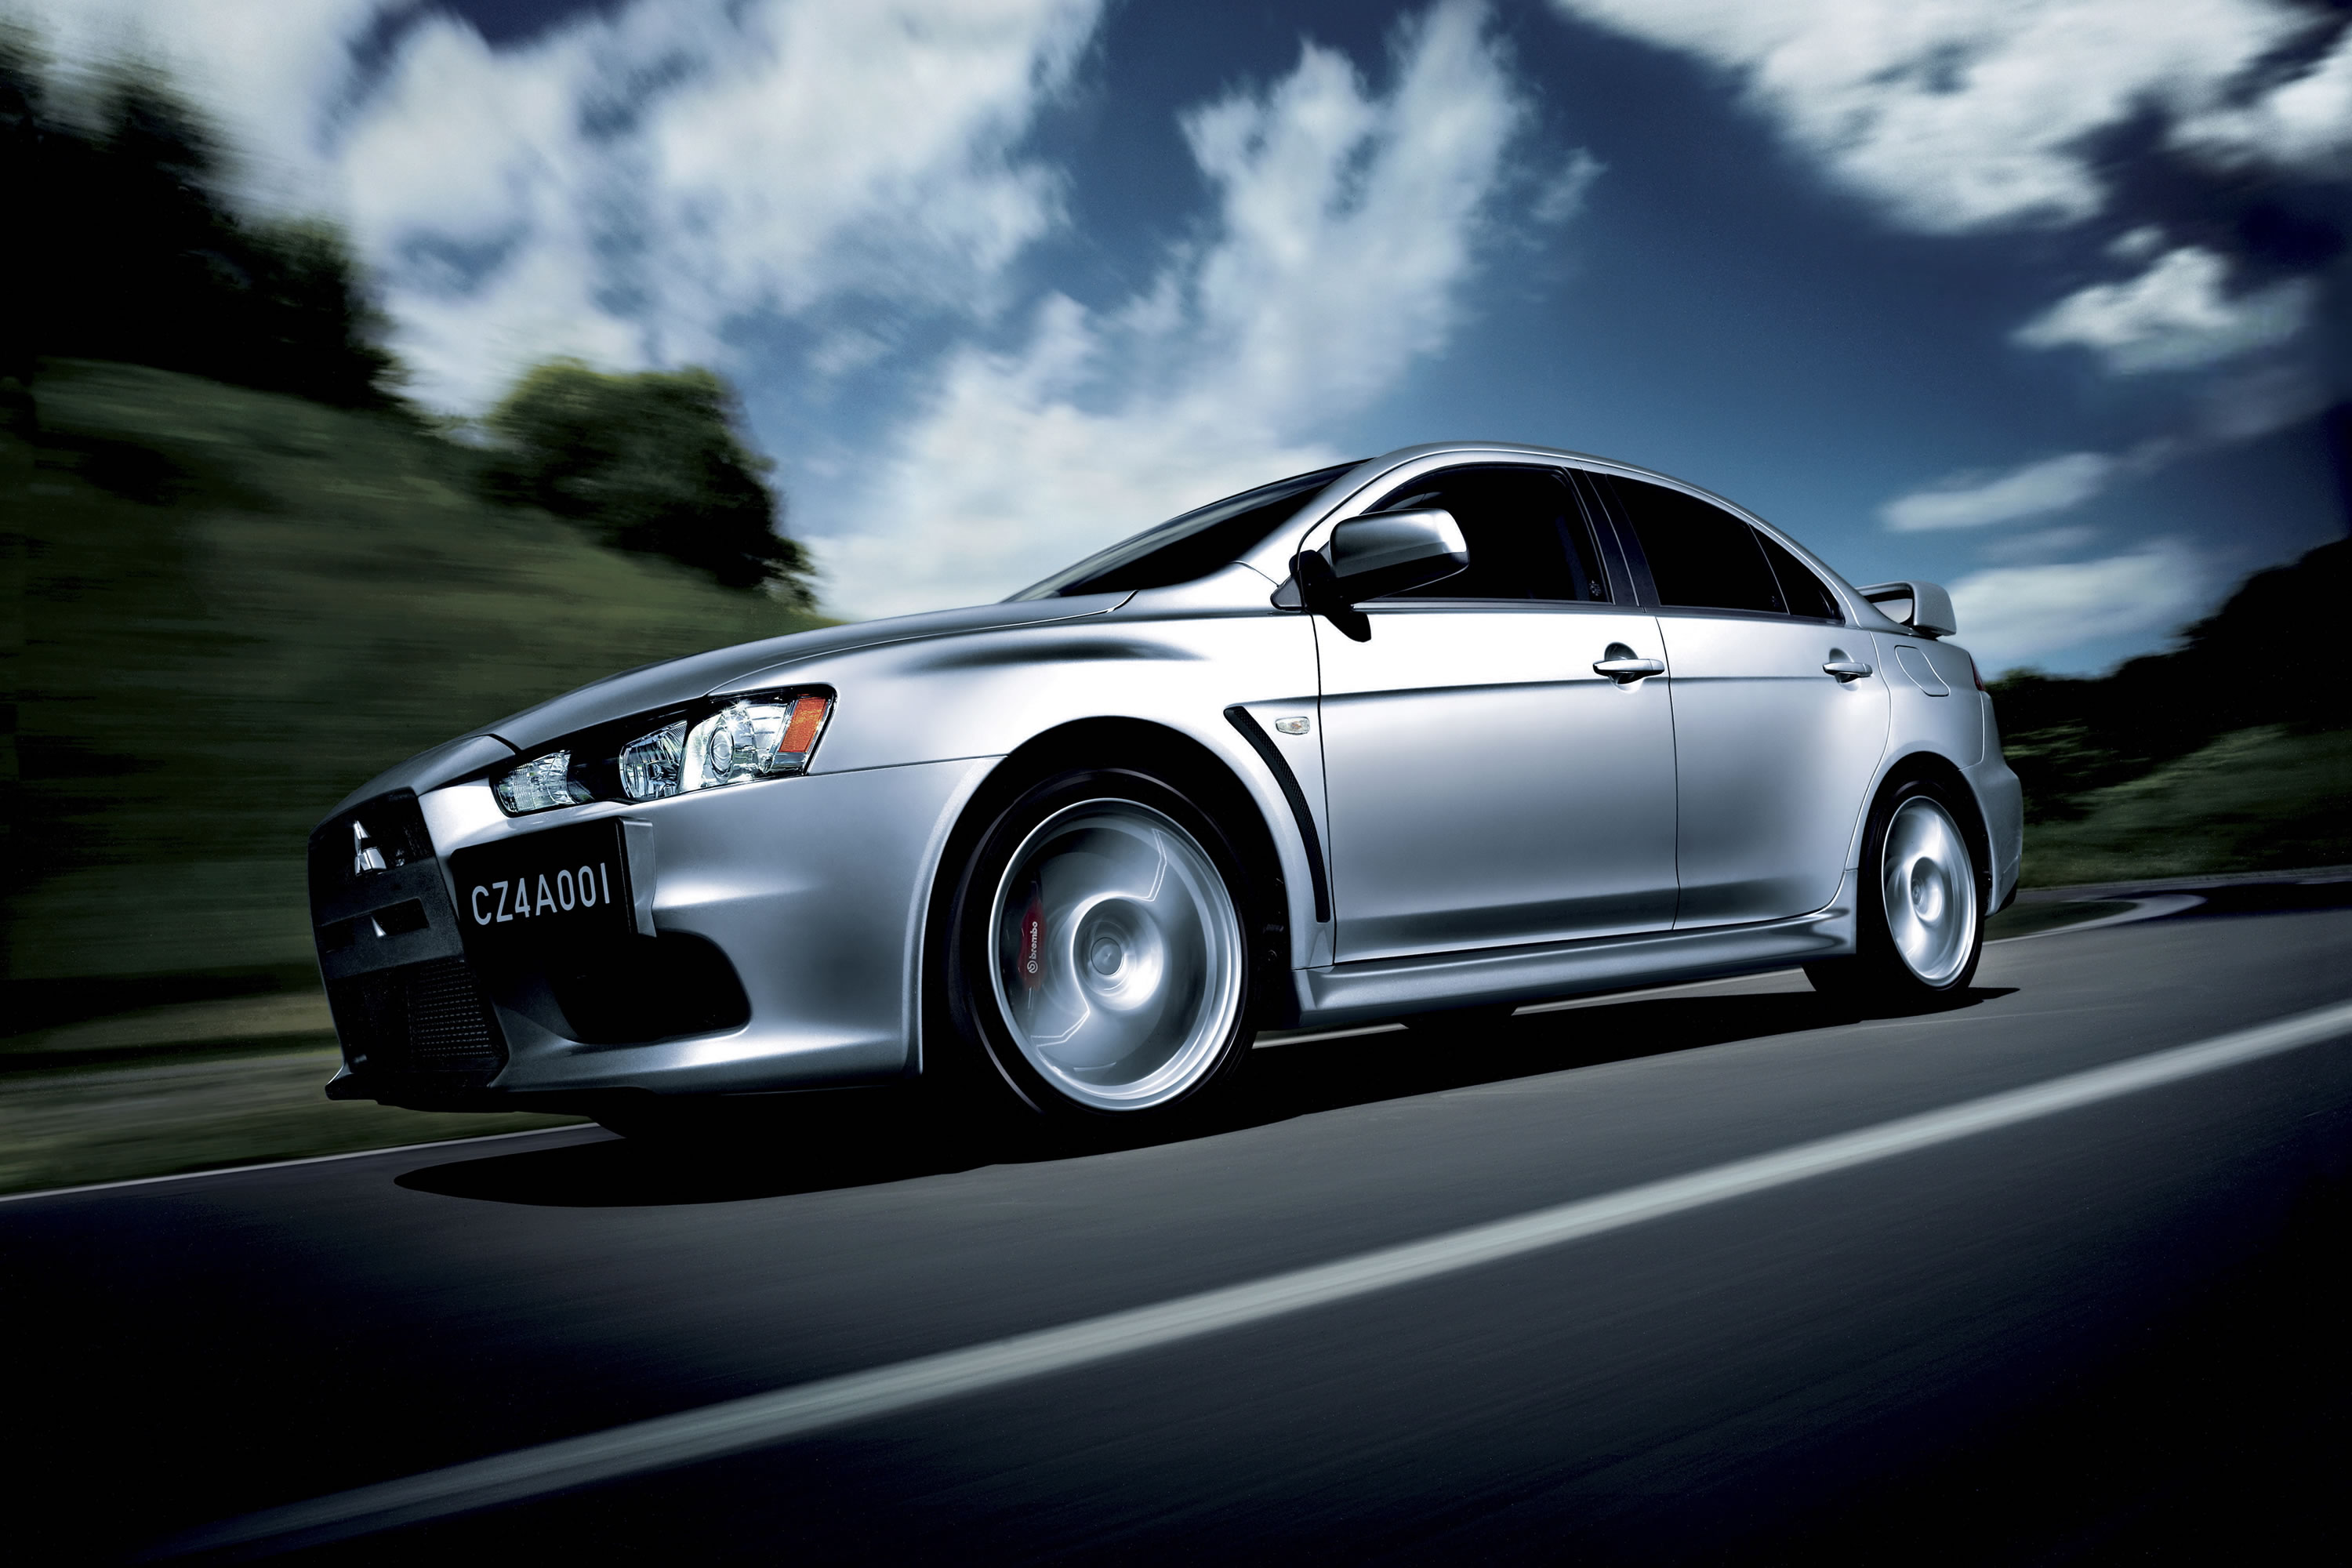 the 2014 mitsubishi lancer evolution gsr combines all of the athleticism and performance that we have